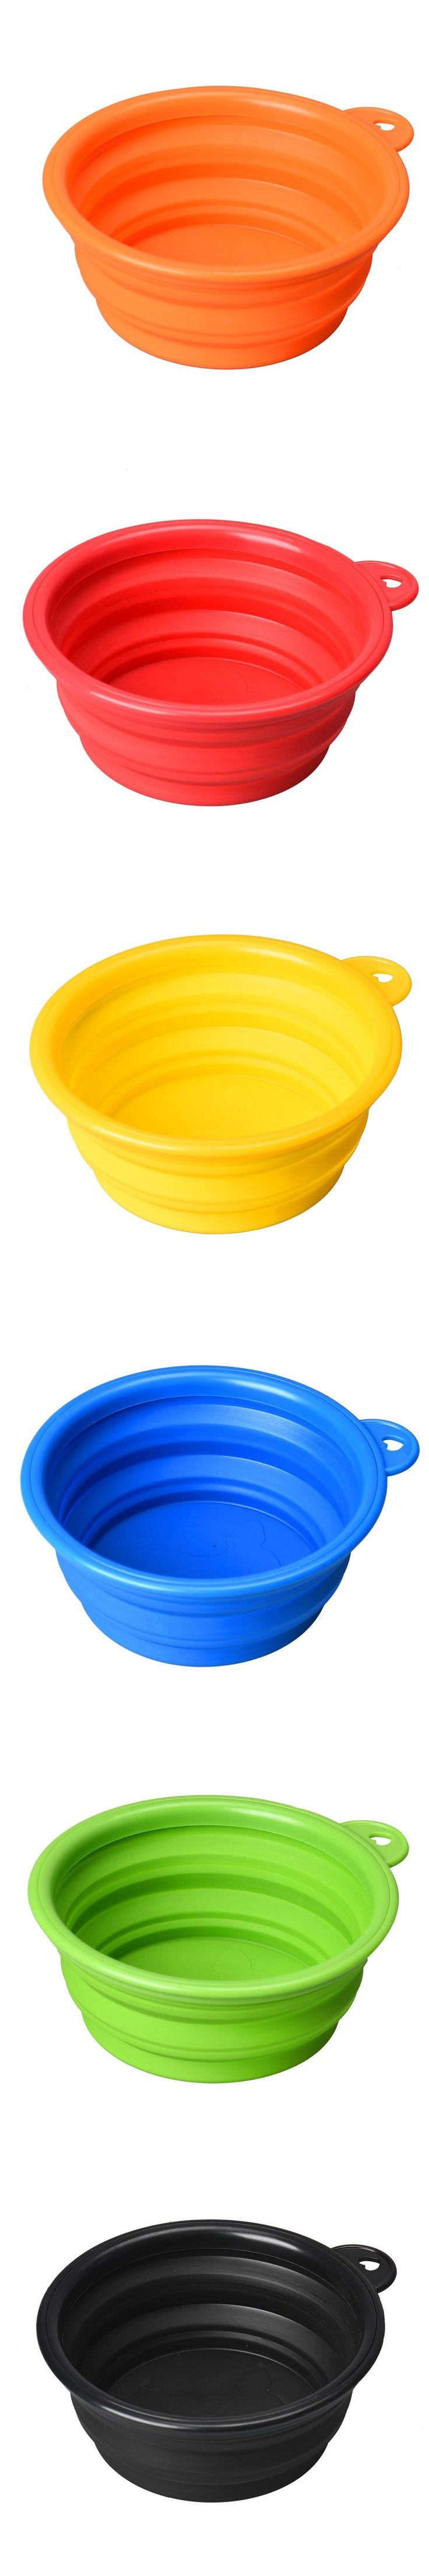 Top Grand Dog Bowl Cat Pet Silicone Collapsible Travel Feeding Bowl Water Dish Feeder  Dropship #J01